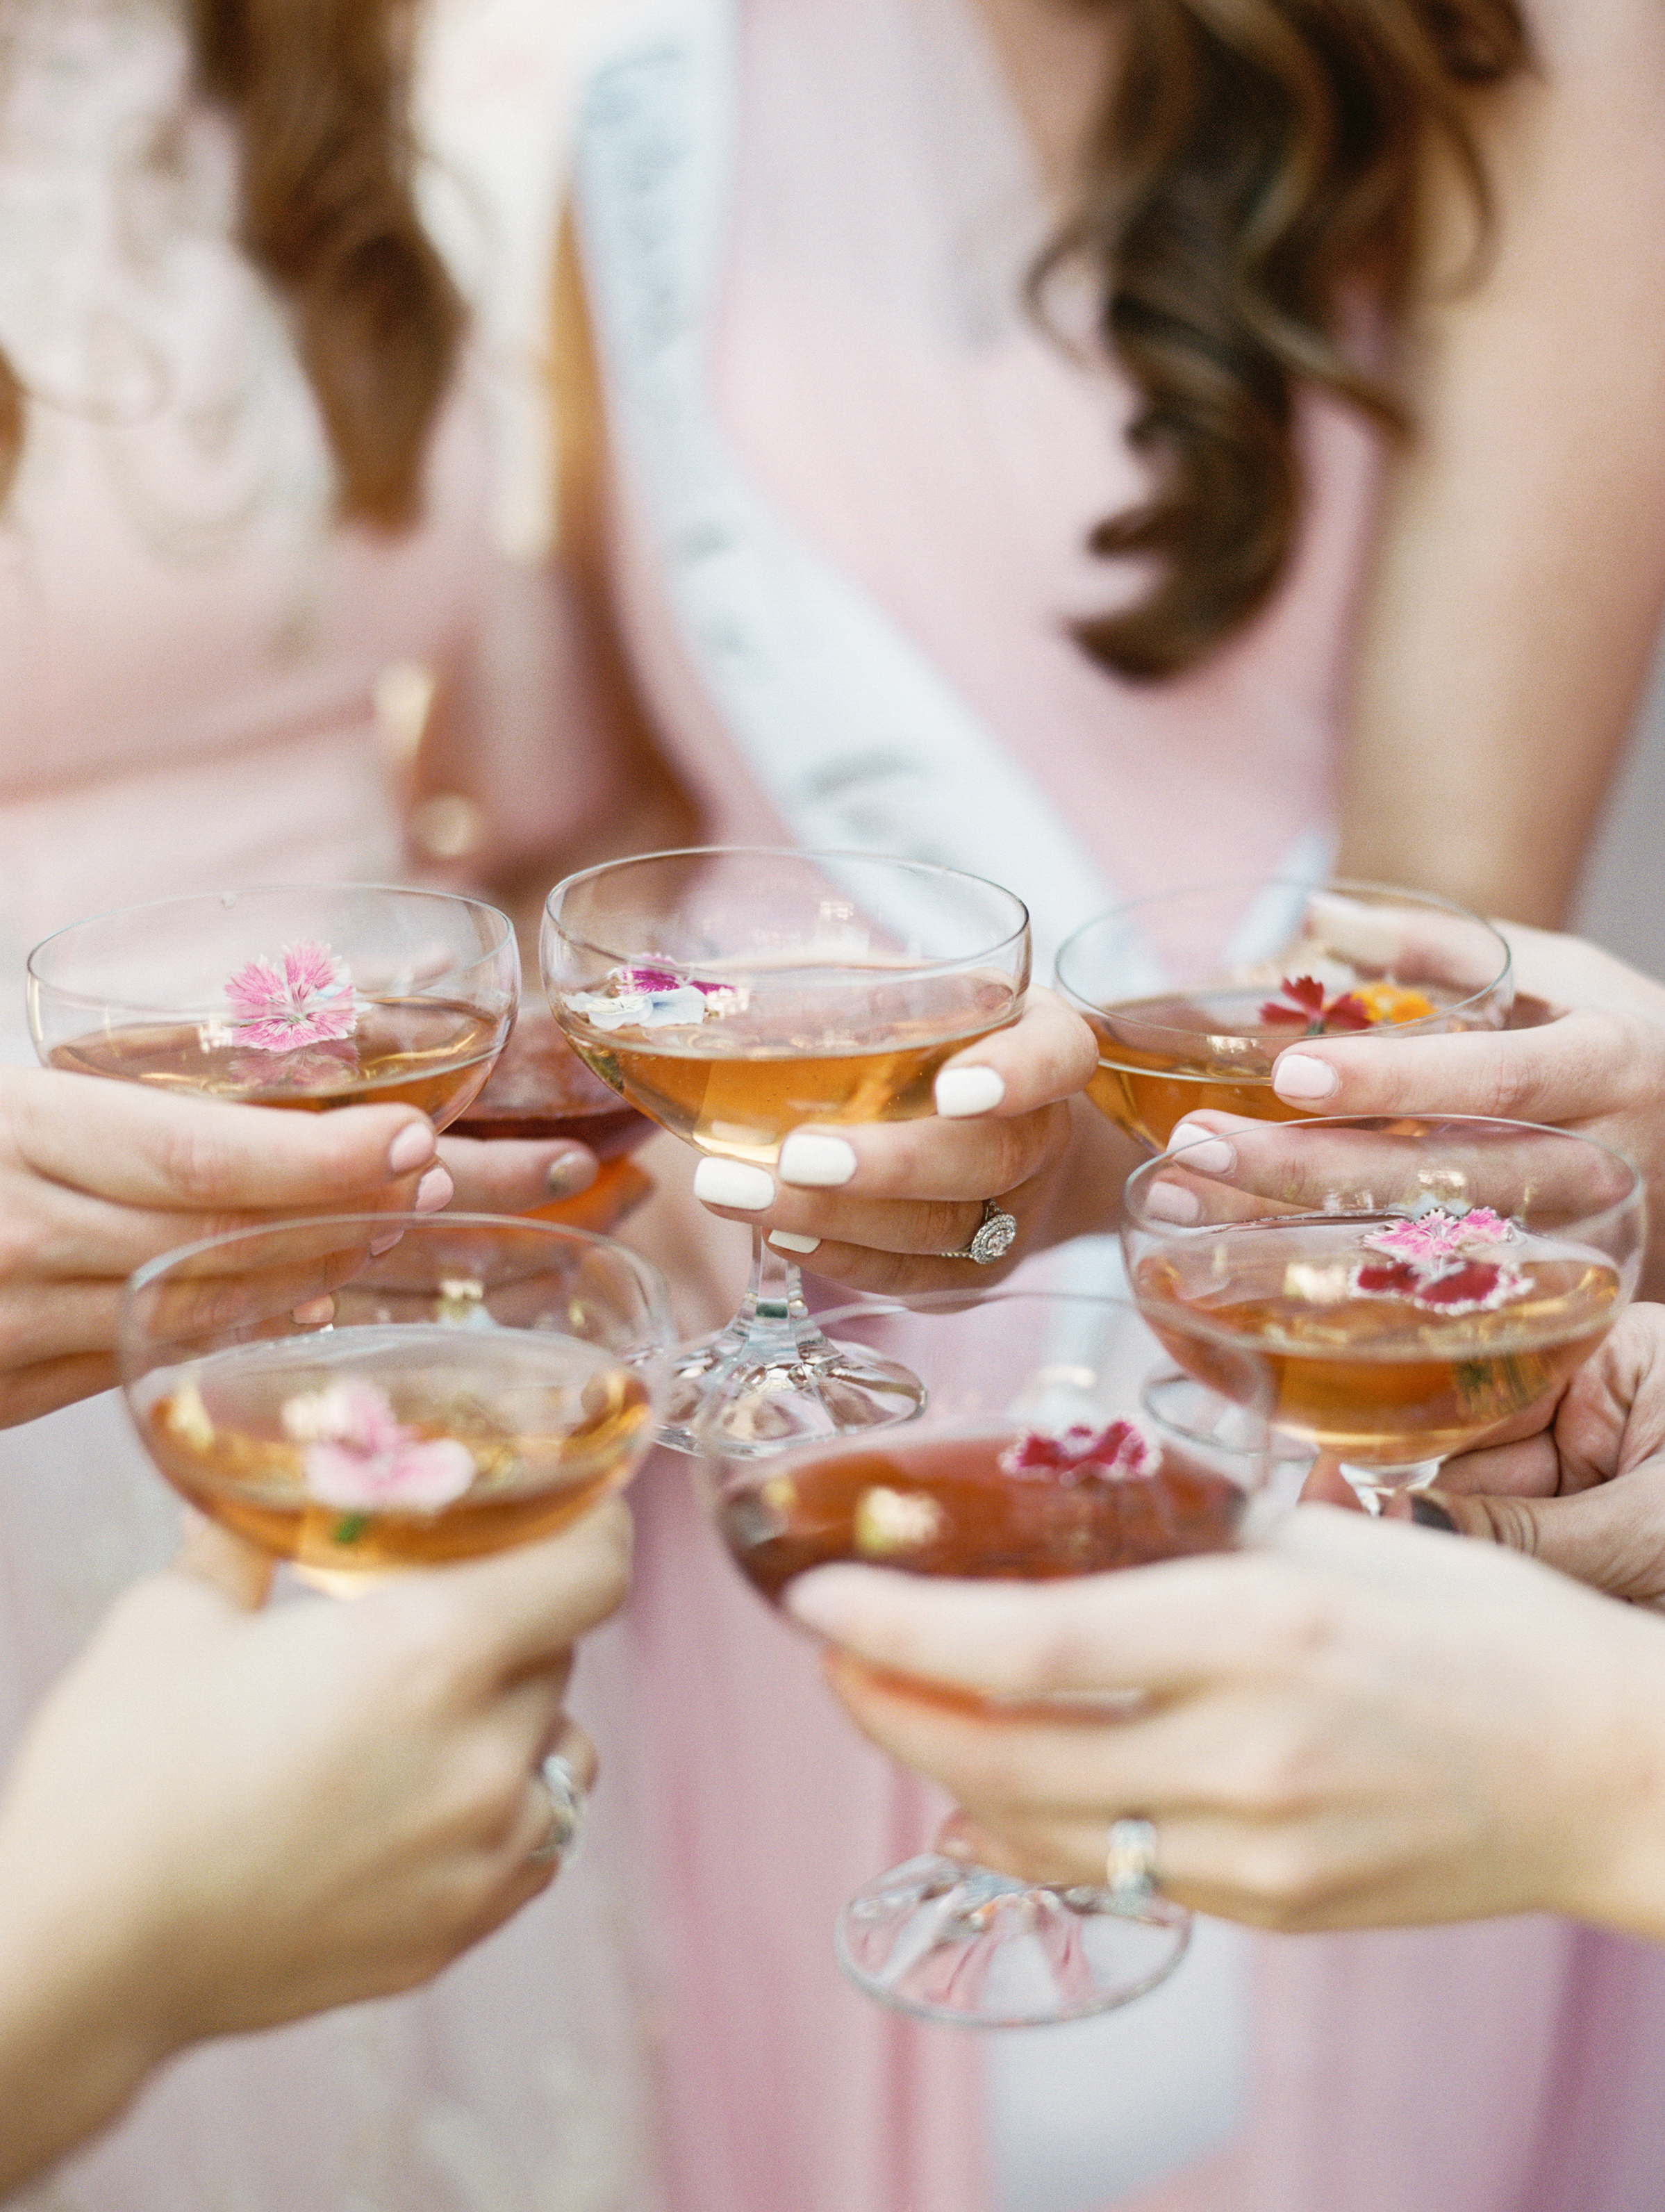 Is it your responsibility to put together a bridal shower?